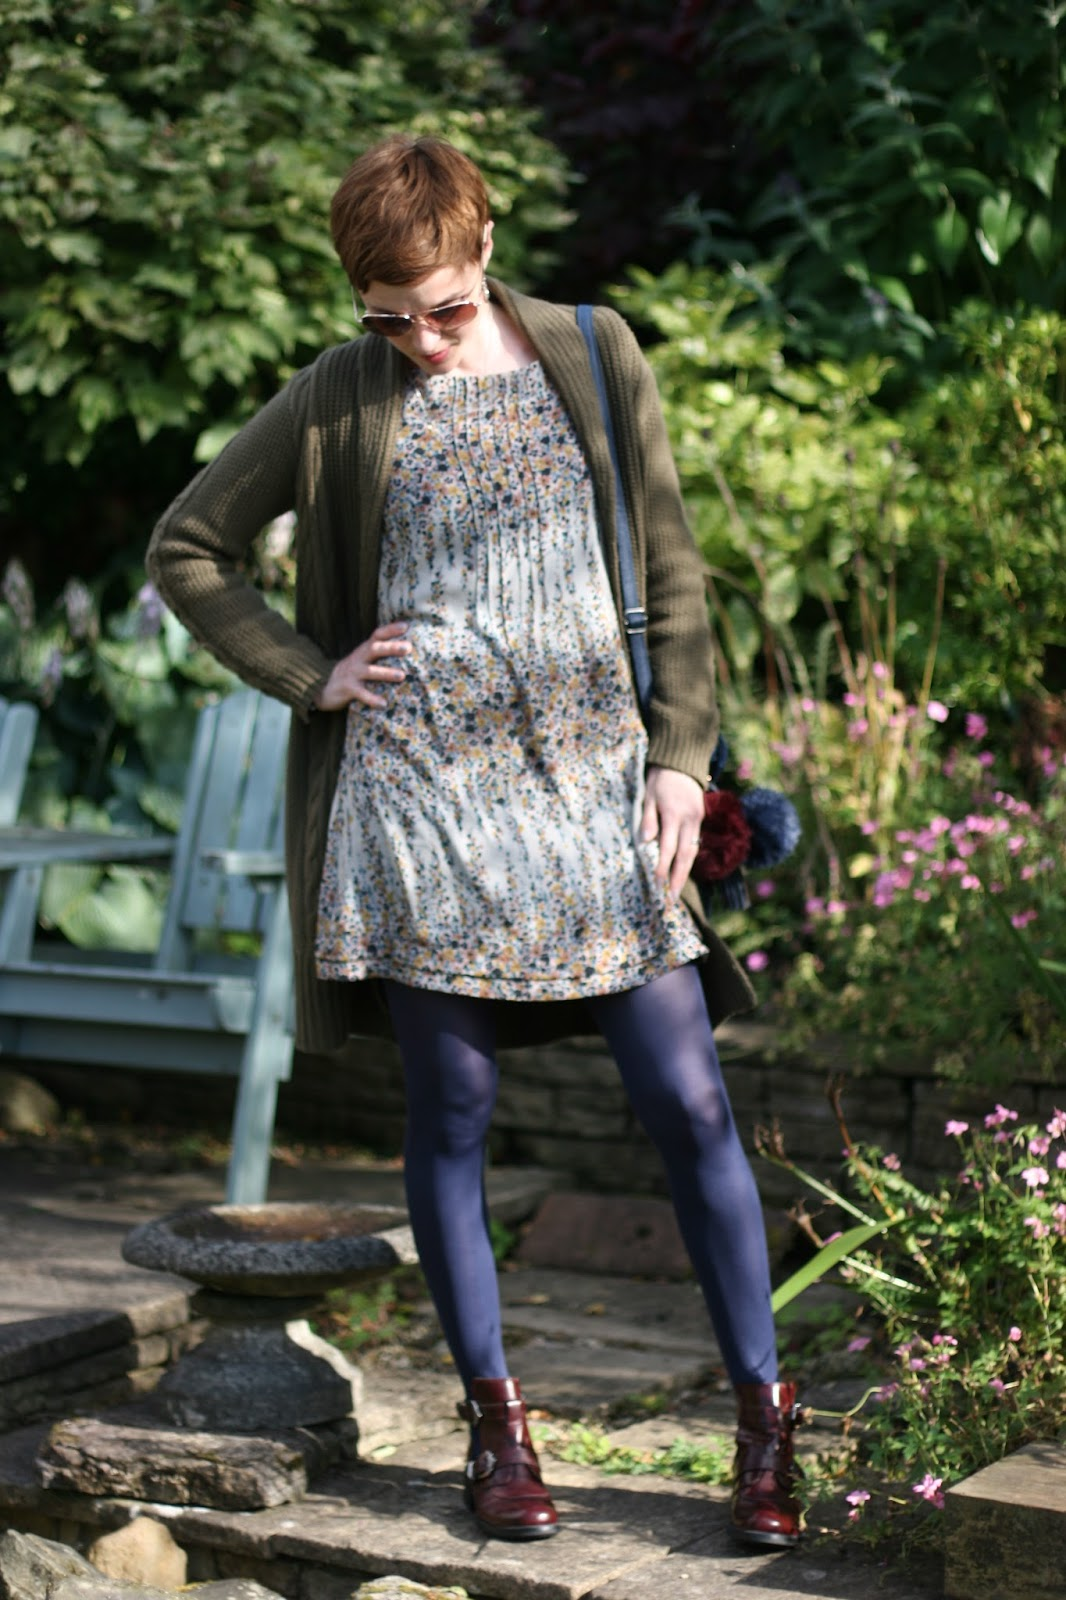 Floral Topshop dress, Boden chunky cardigan, Blue Charnos tights, oxblood leather boots.